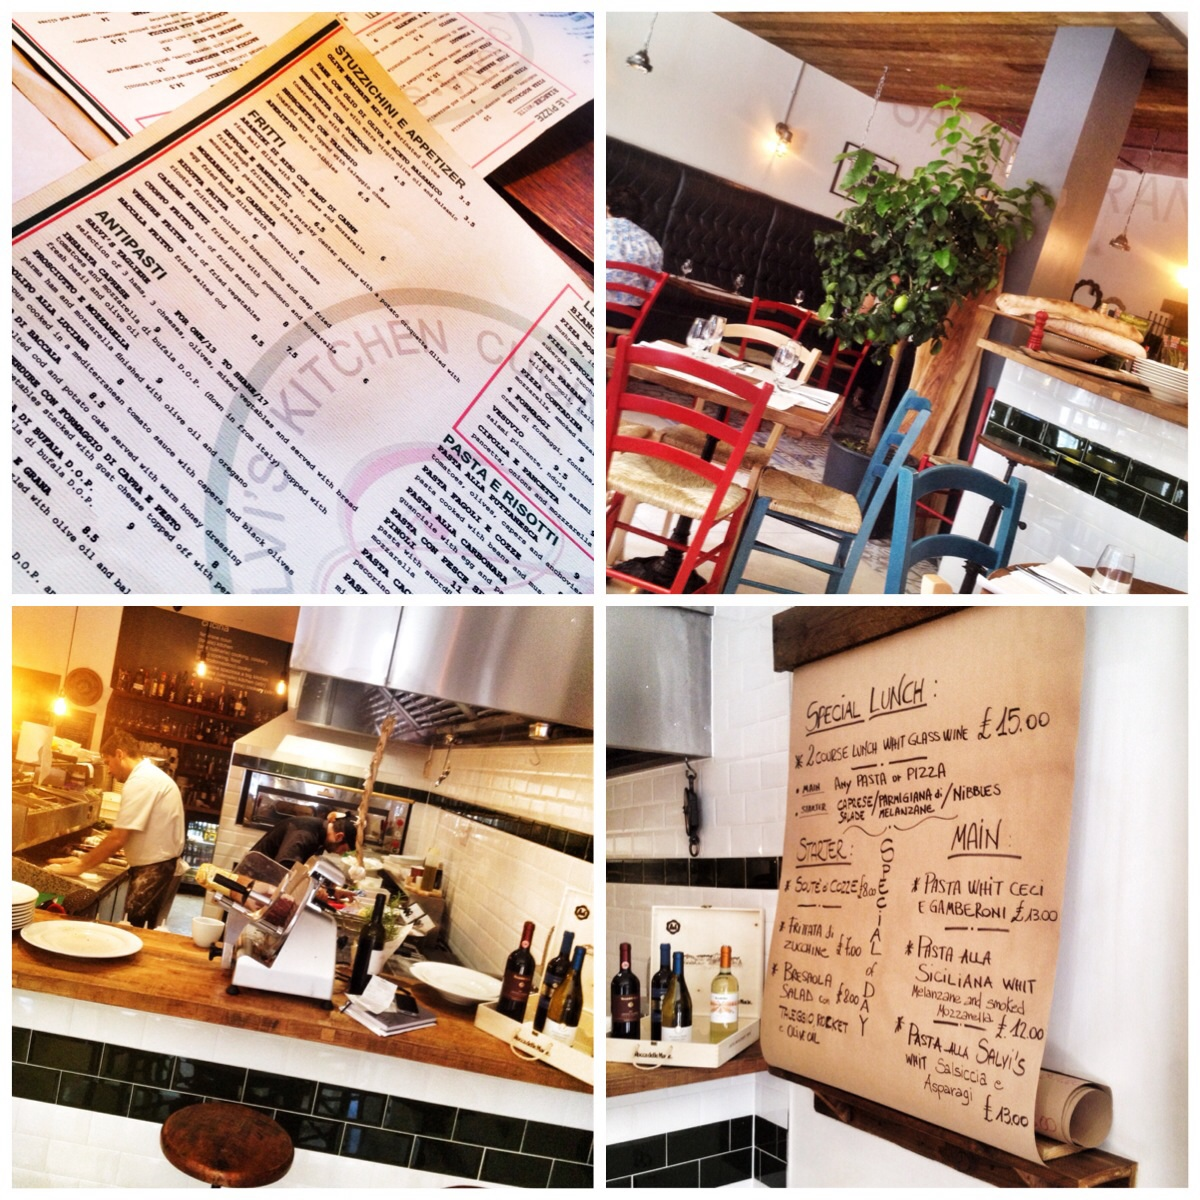 Kitchen Chairs For Cooking: Salvi's Cucina – Manchester